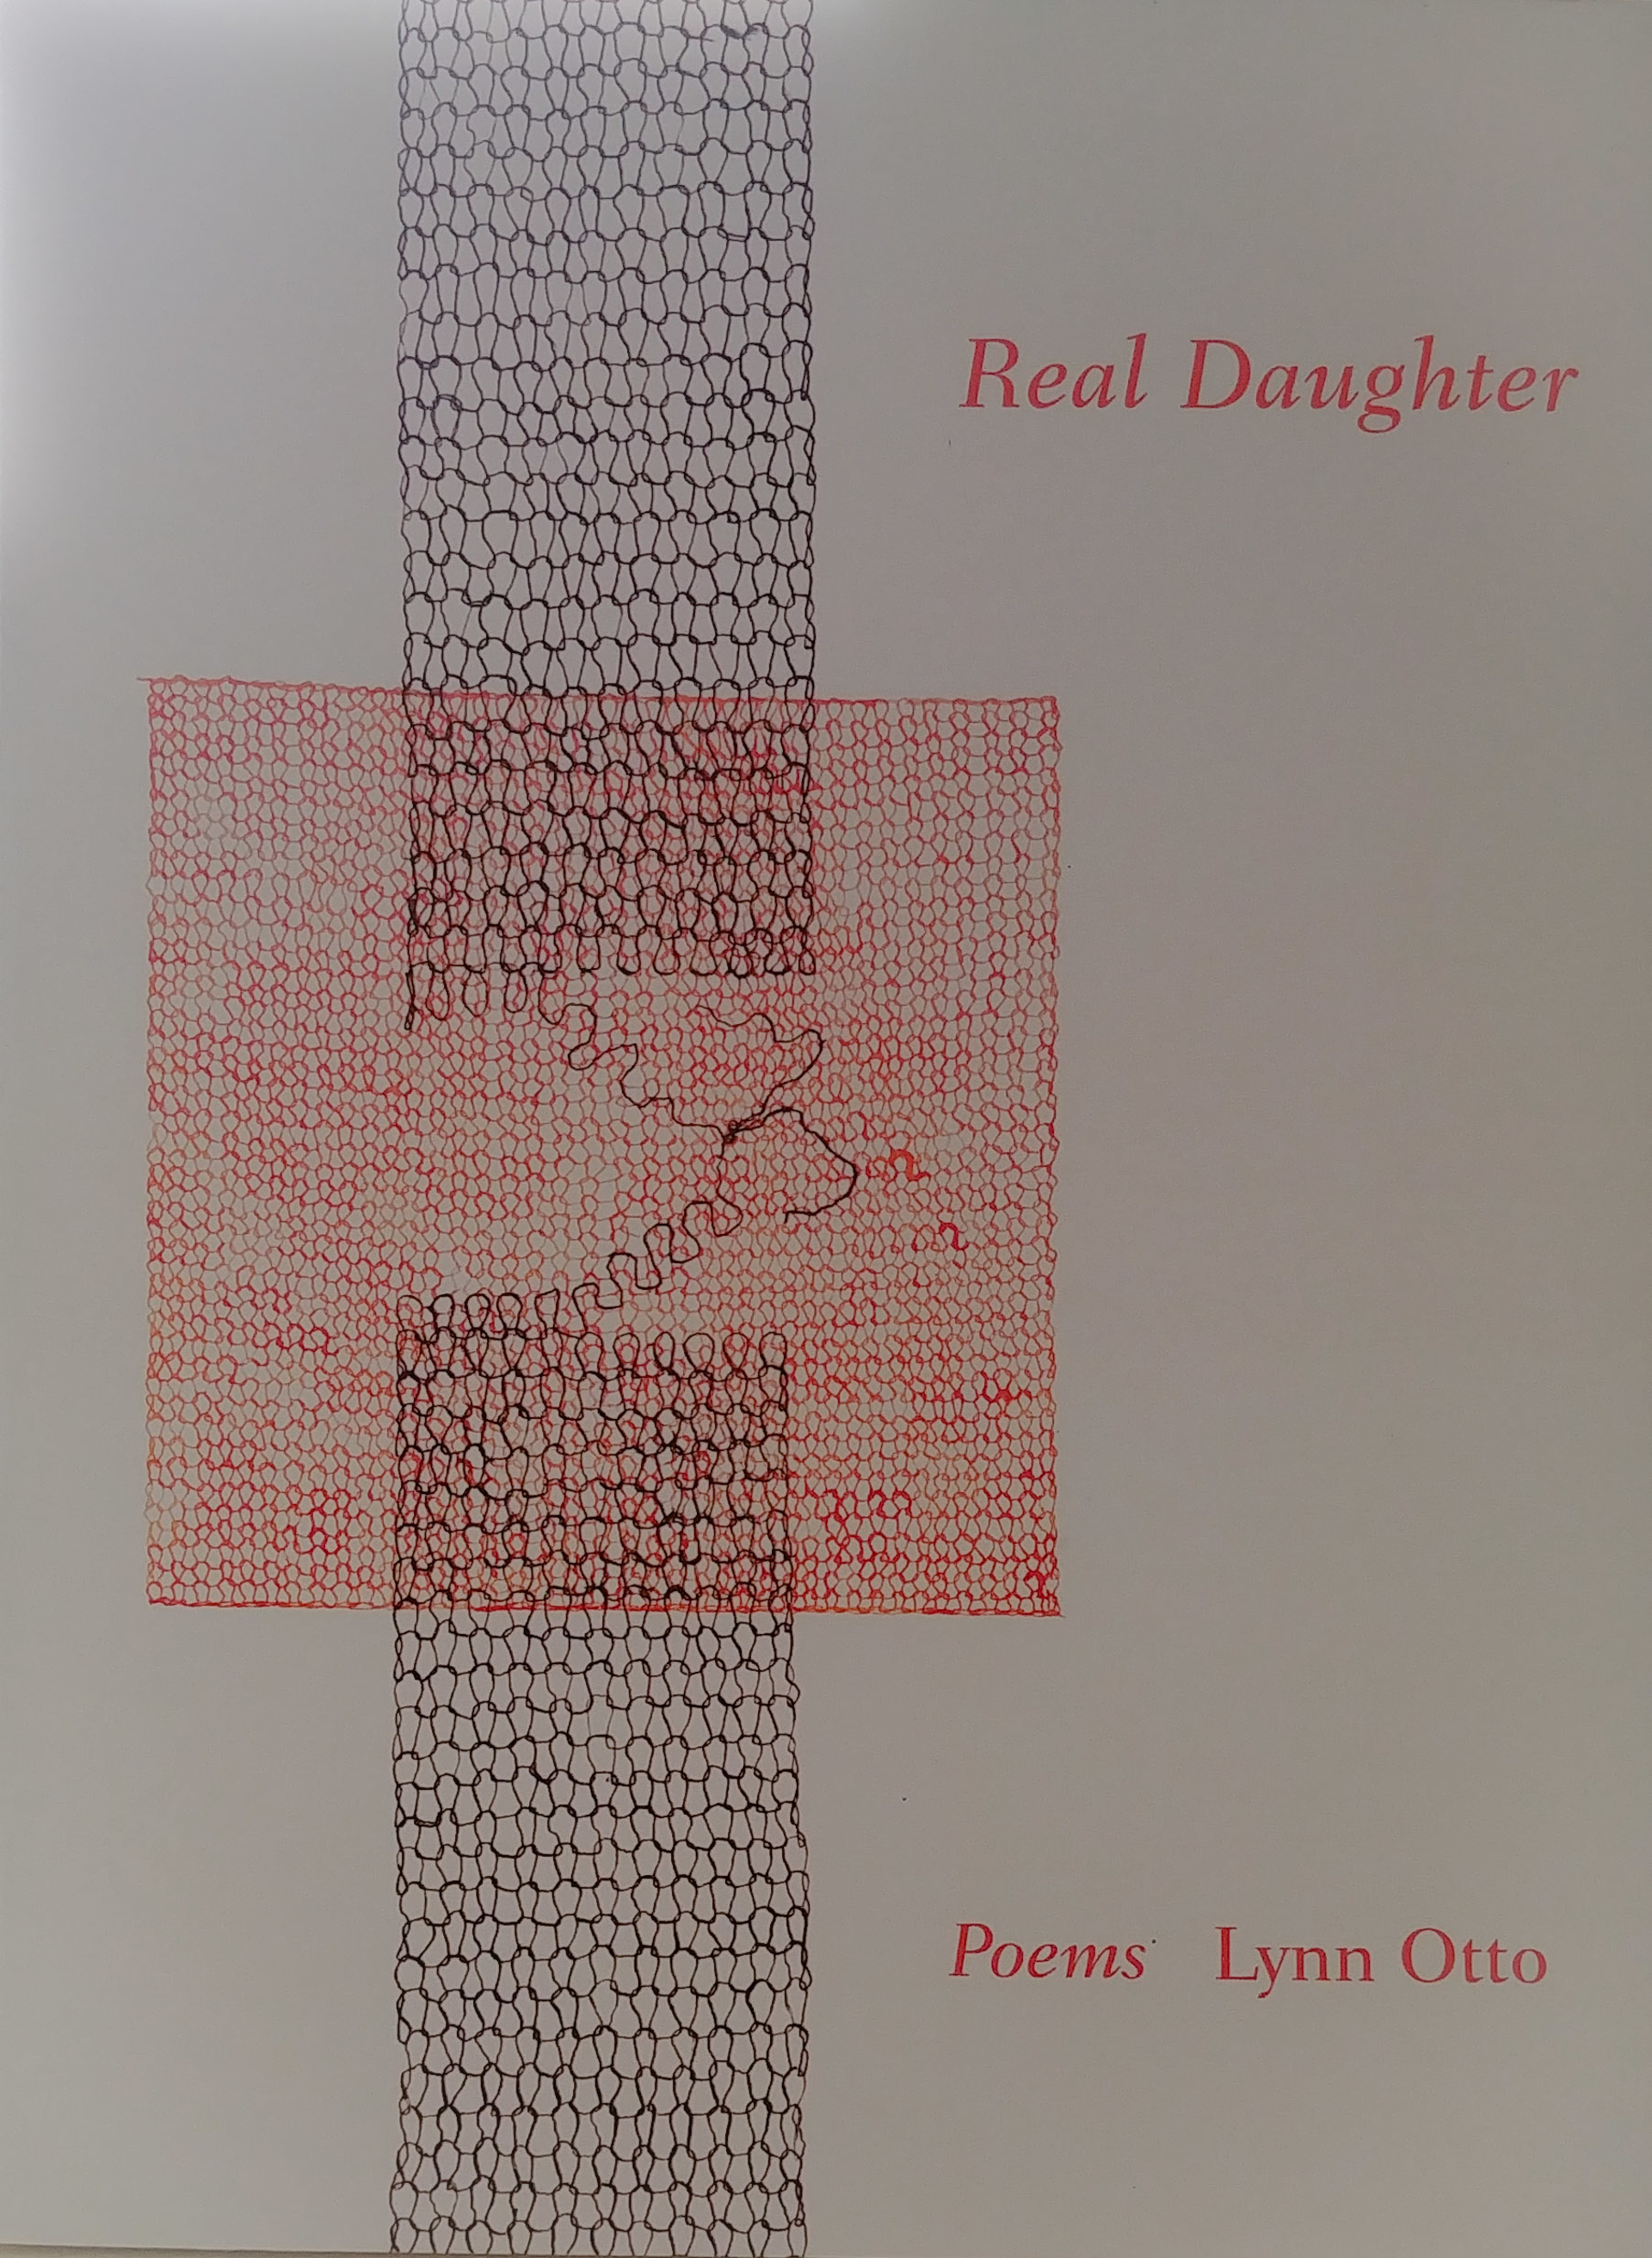 Real Daughter - Poems by Lynn Otto (Newberg, OR)